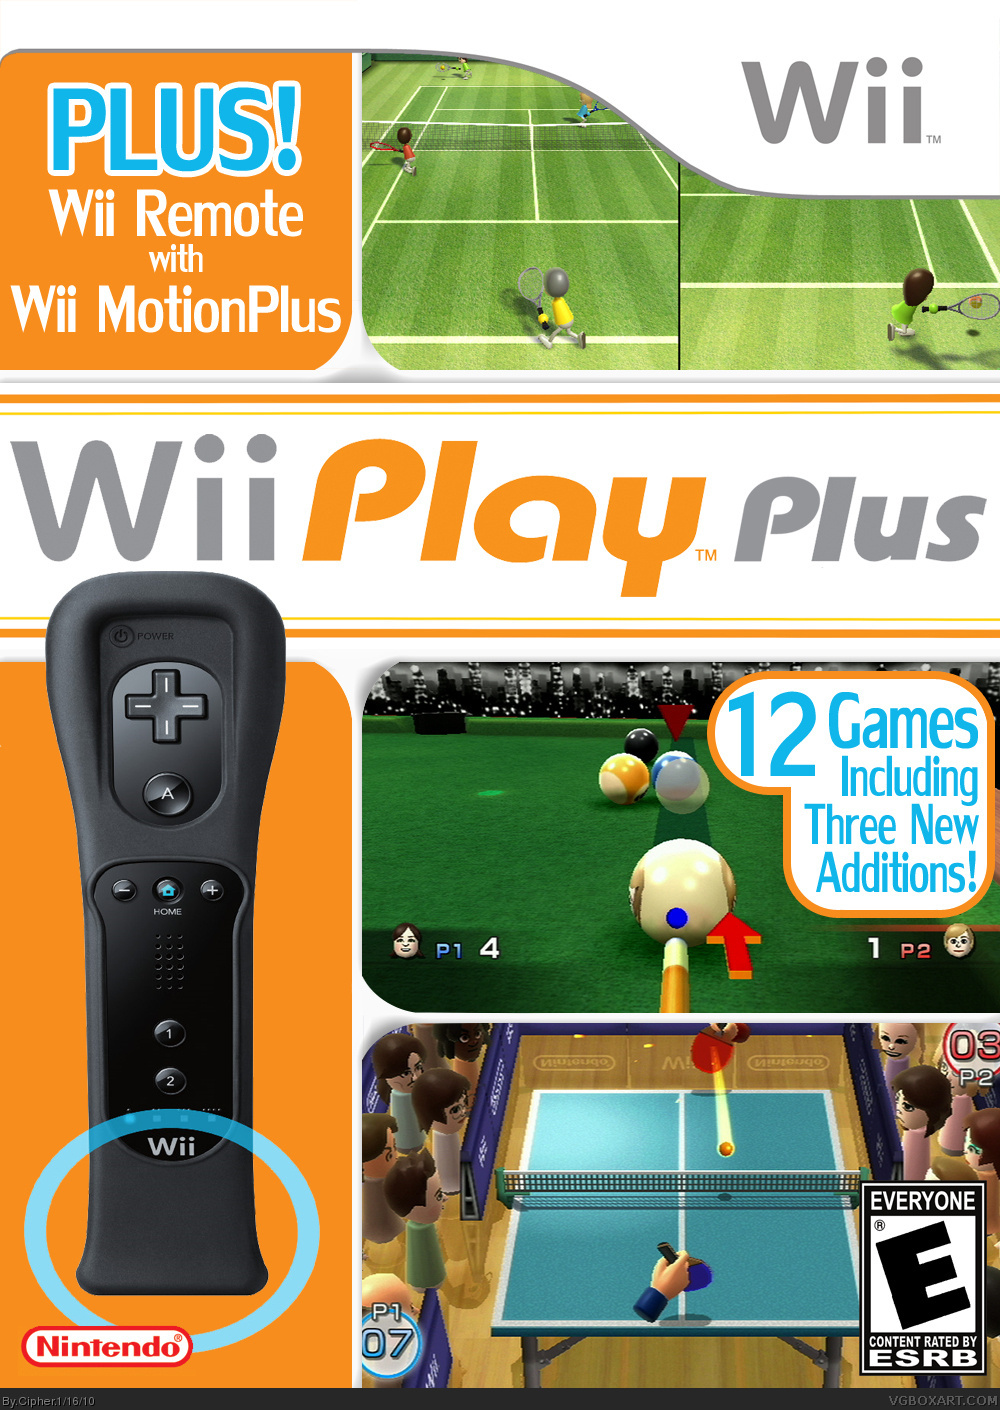 34955-wii-play-plus-old-full.jpg